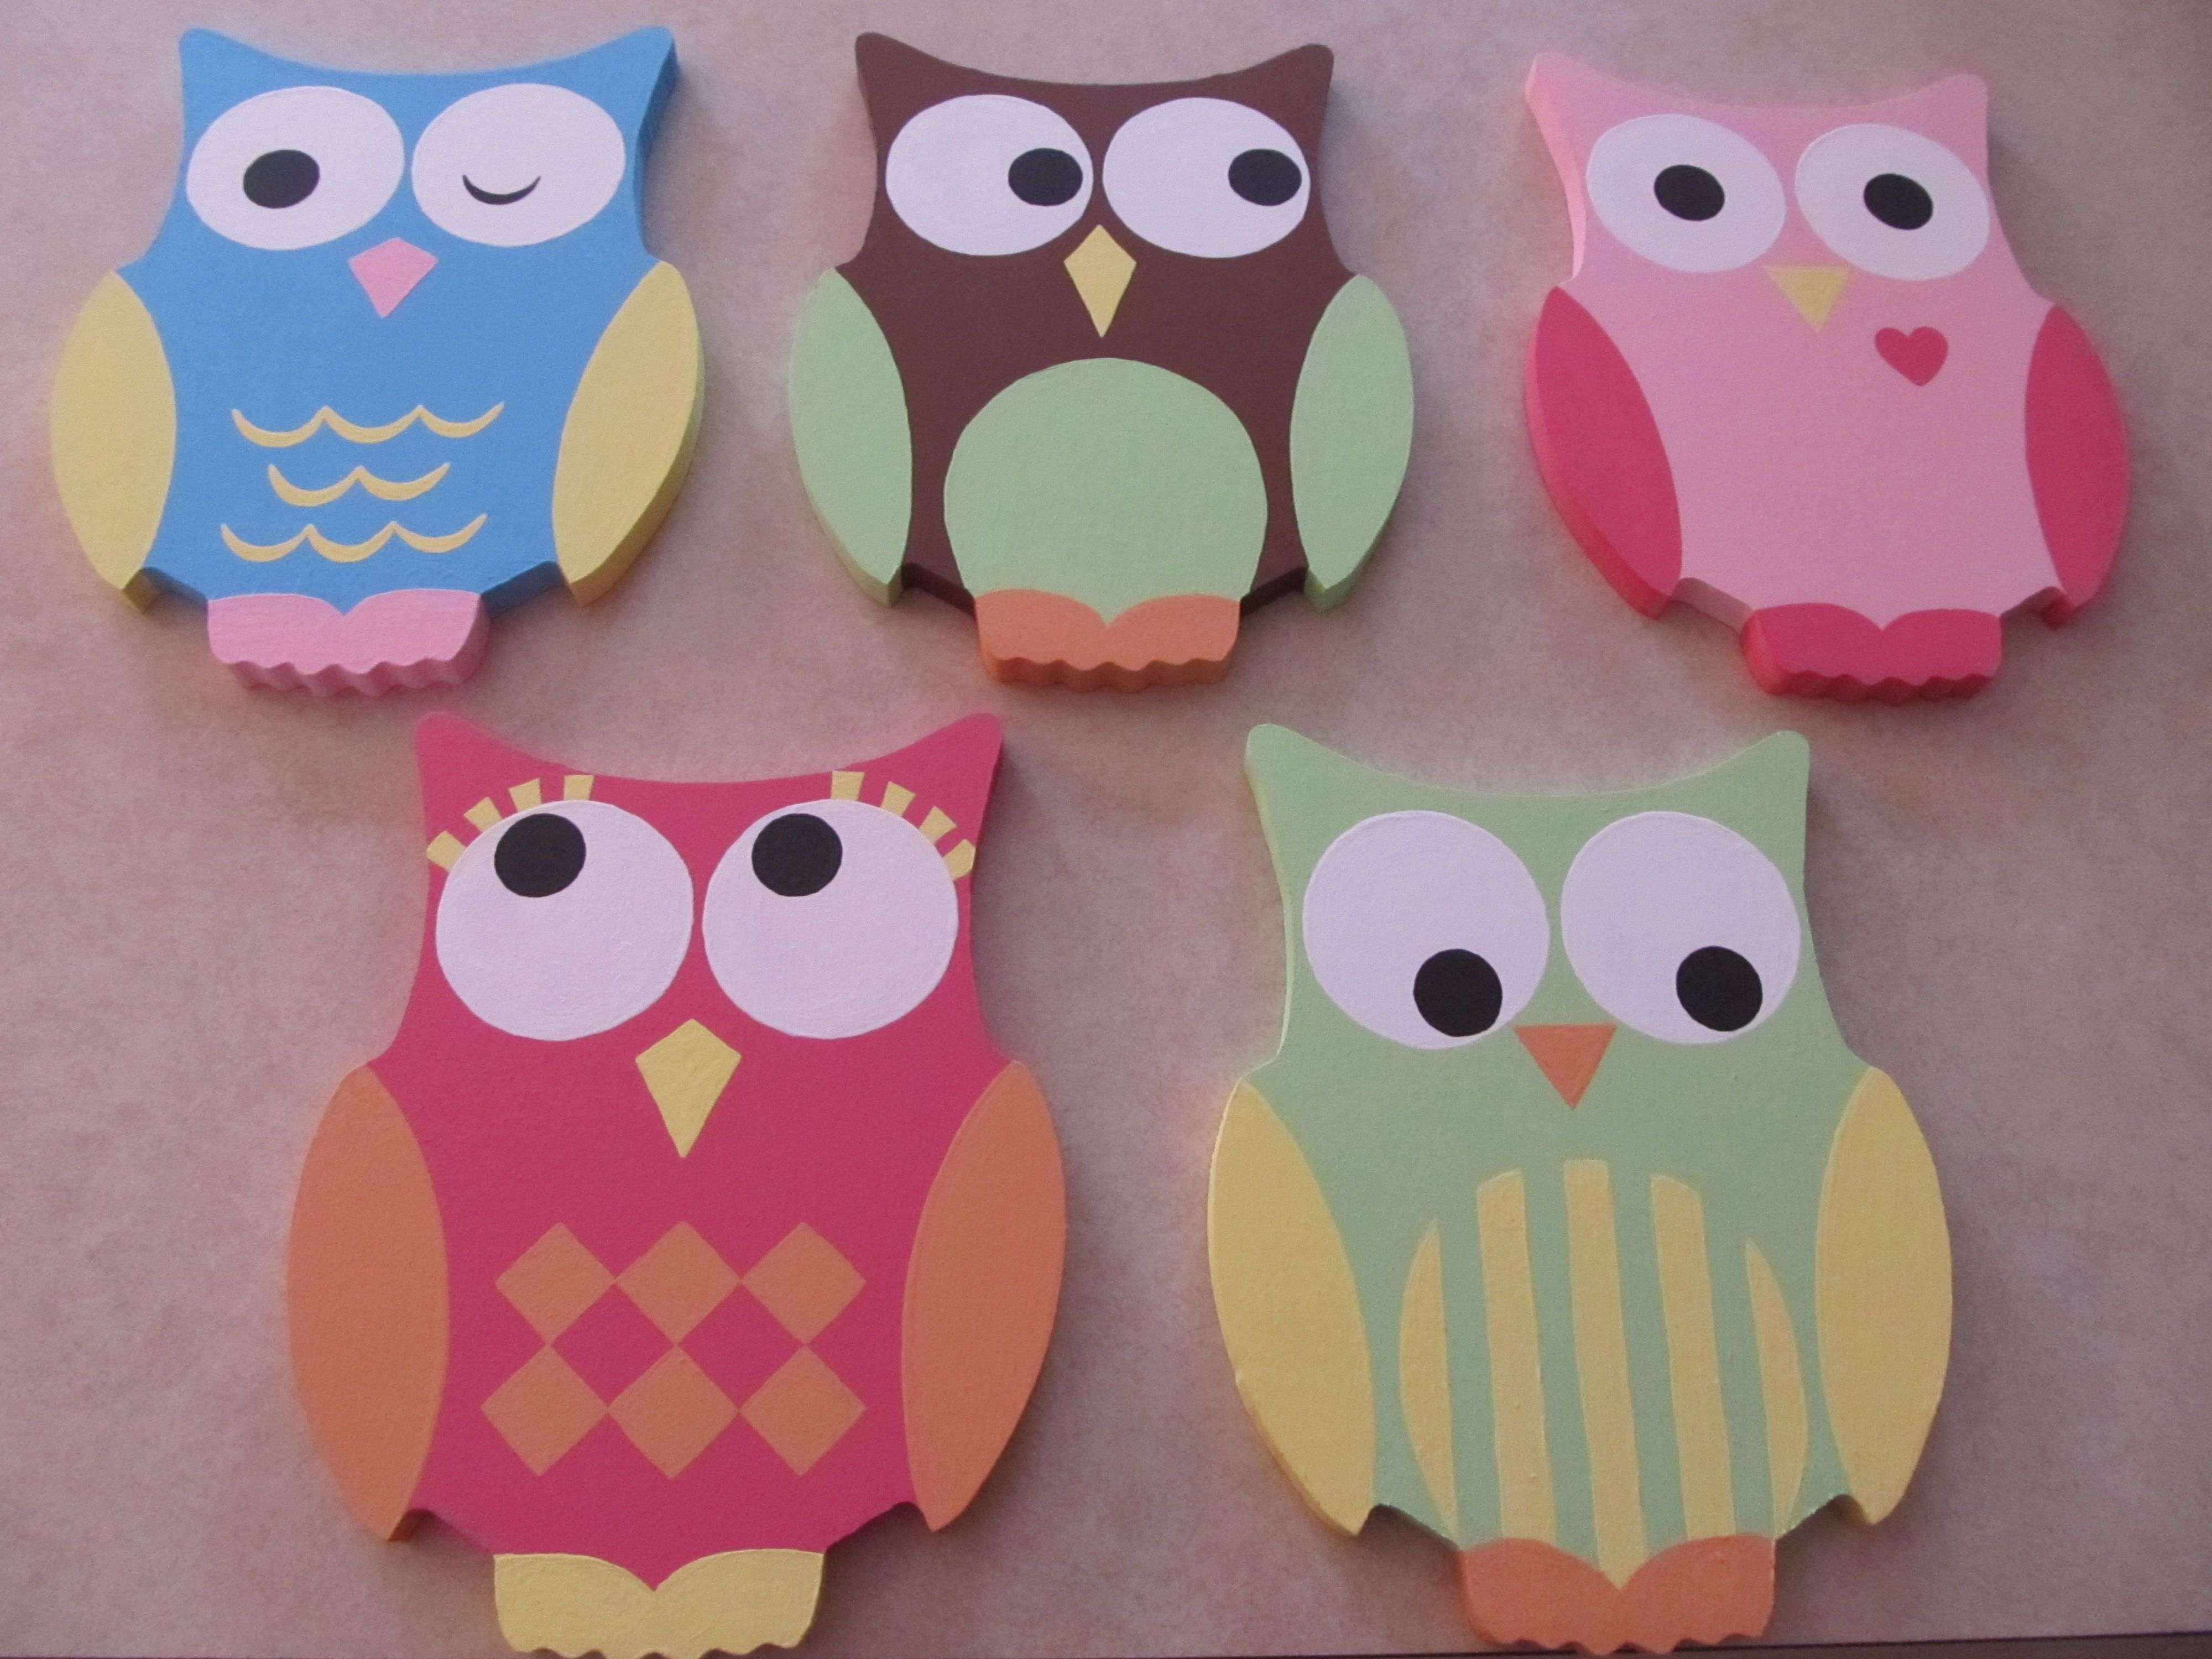 painted wooden owls to decorate the kids' bathroom. | things i've